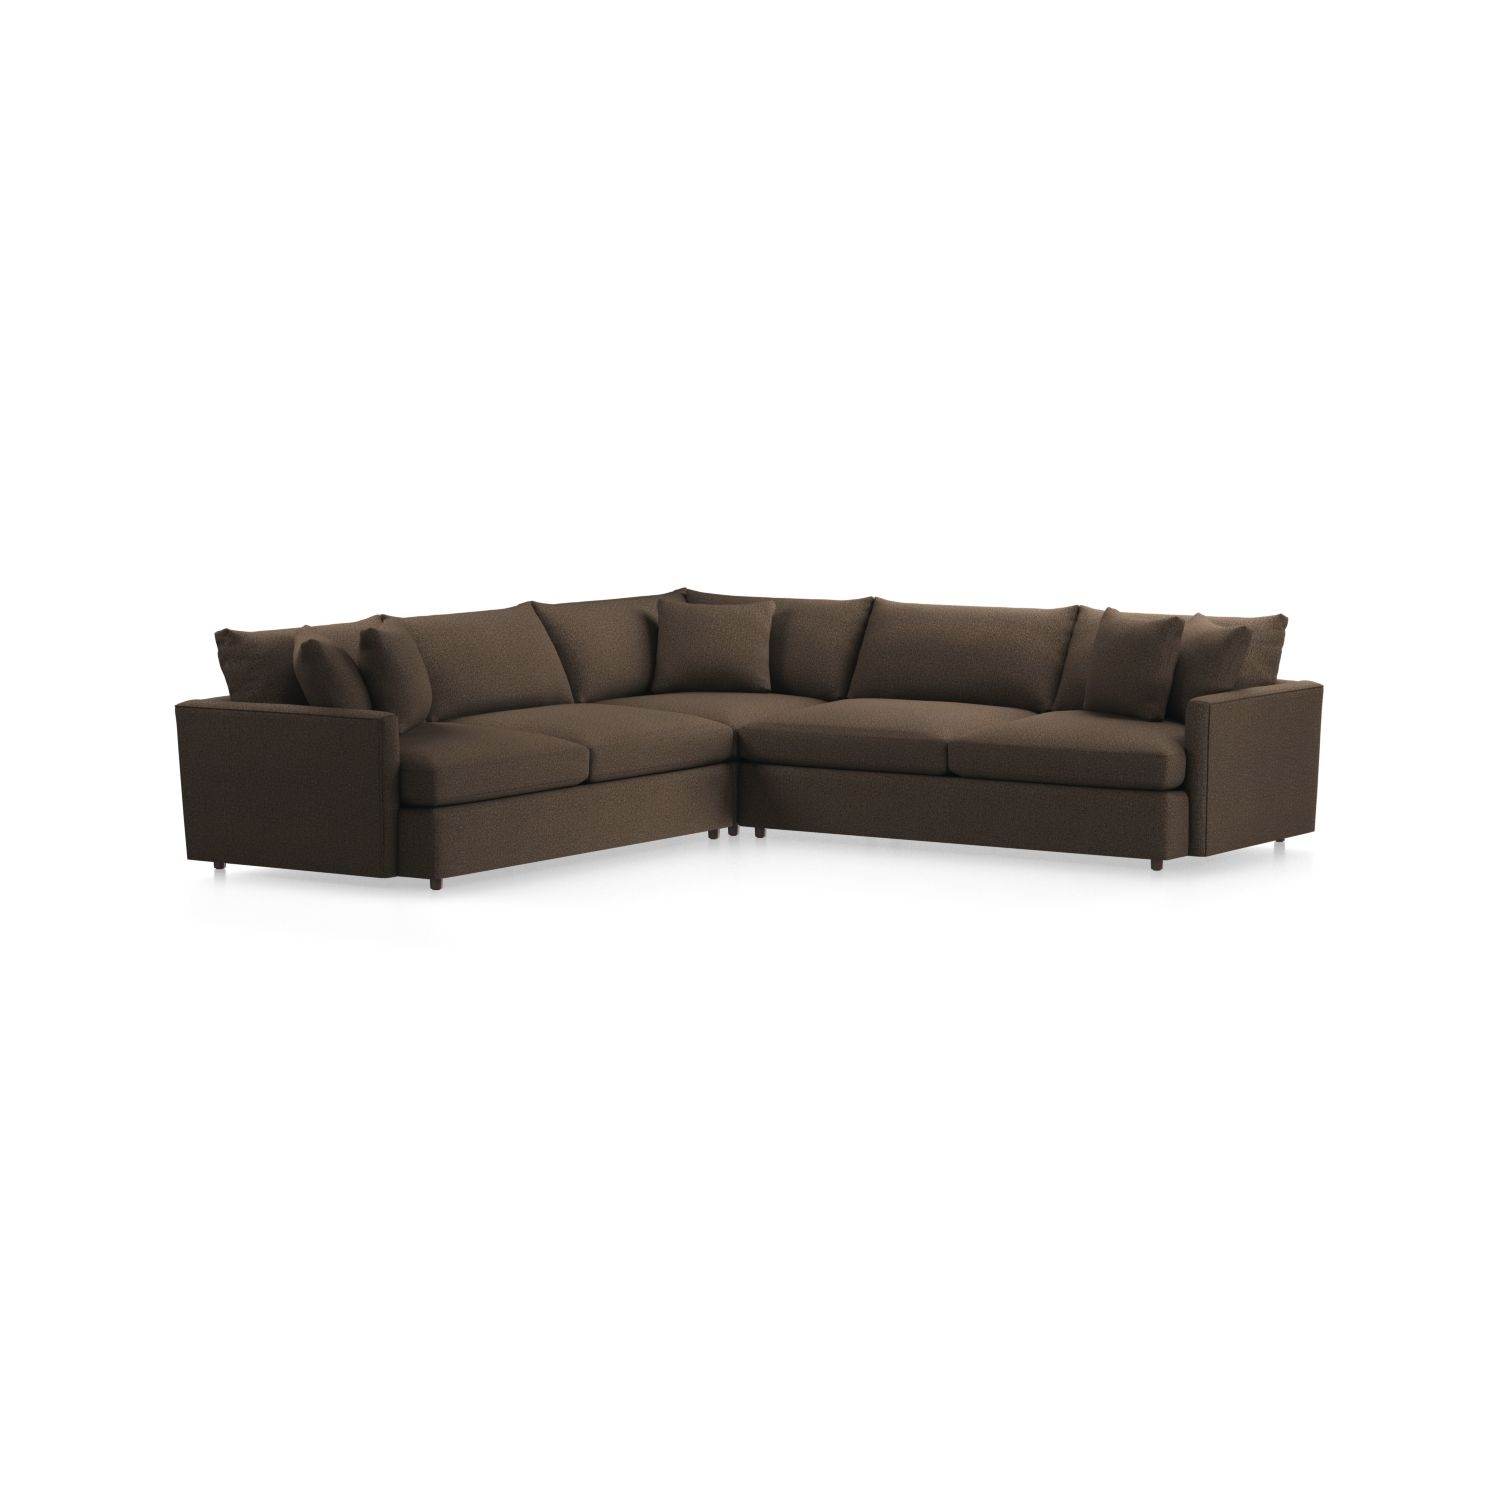 Lounge Ii 3-Piece Sectional Sofa + Reviews | Crate And Barrel for Glamour Ii 3 Piece Sectionals (Image 18 of 30)